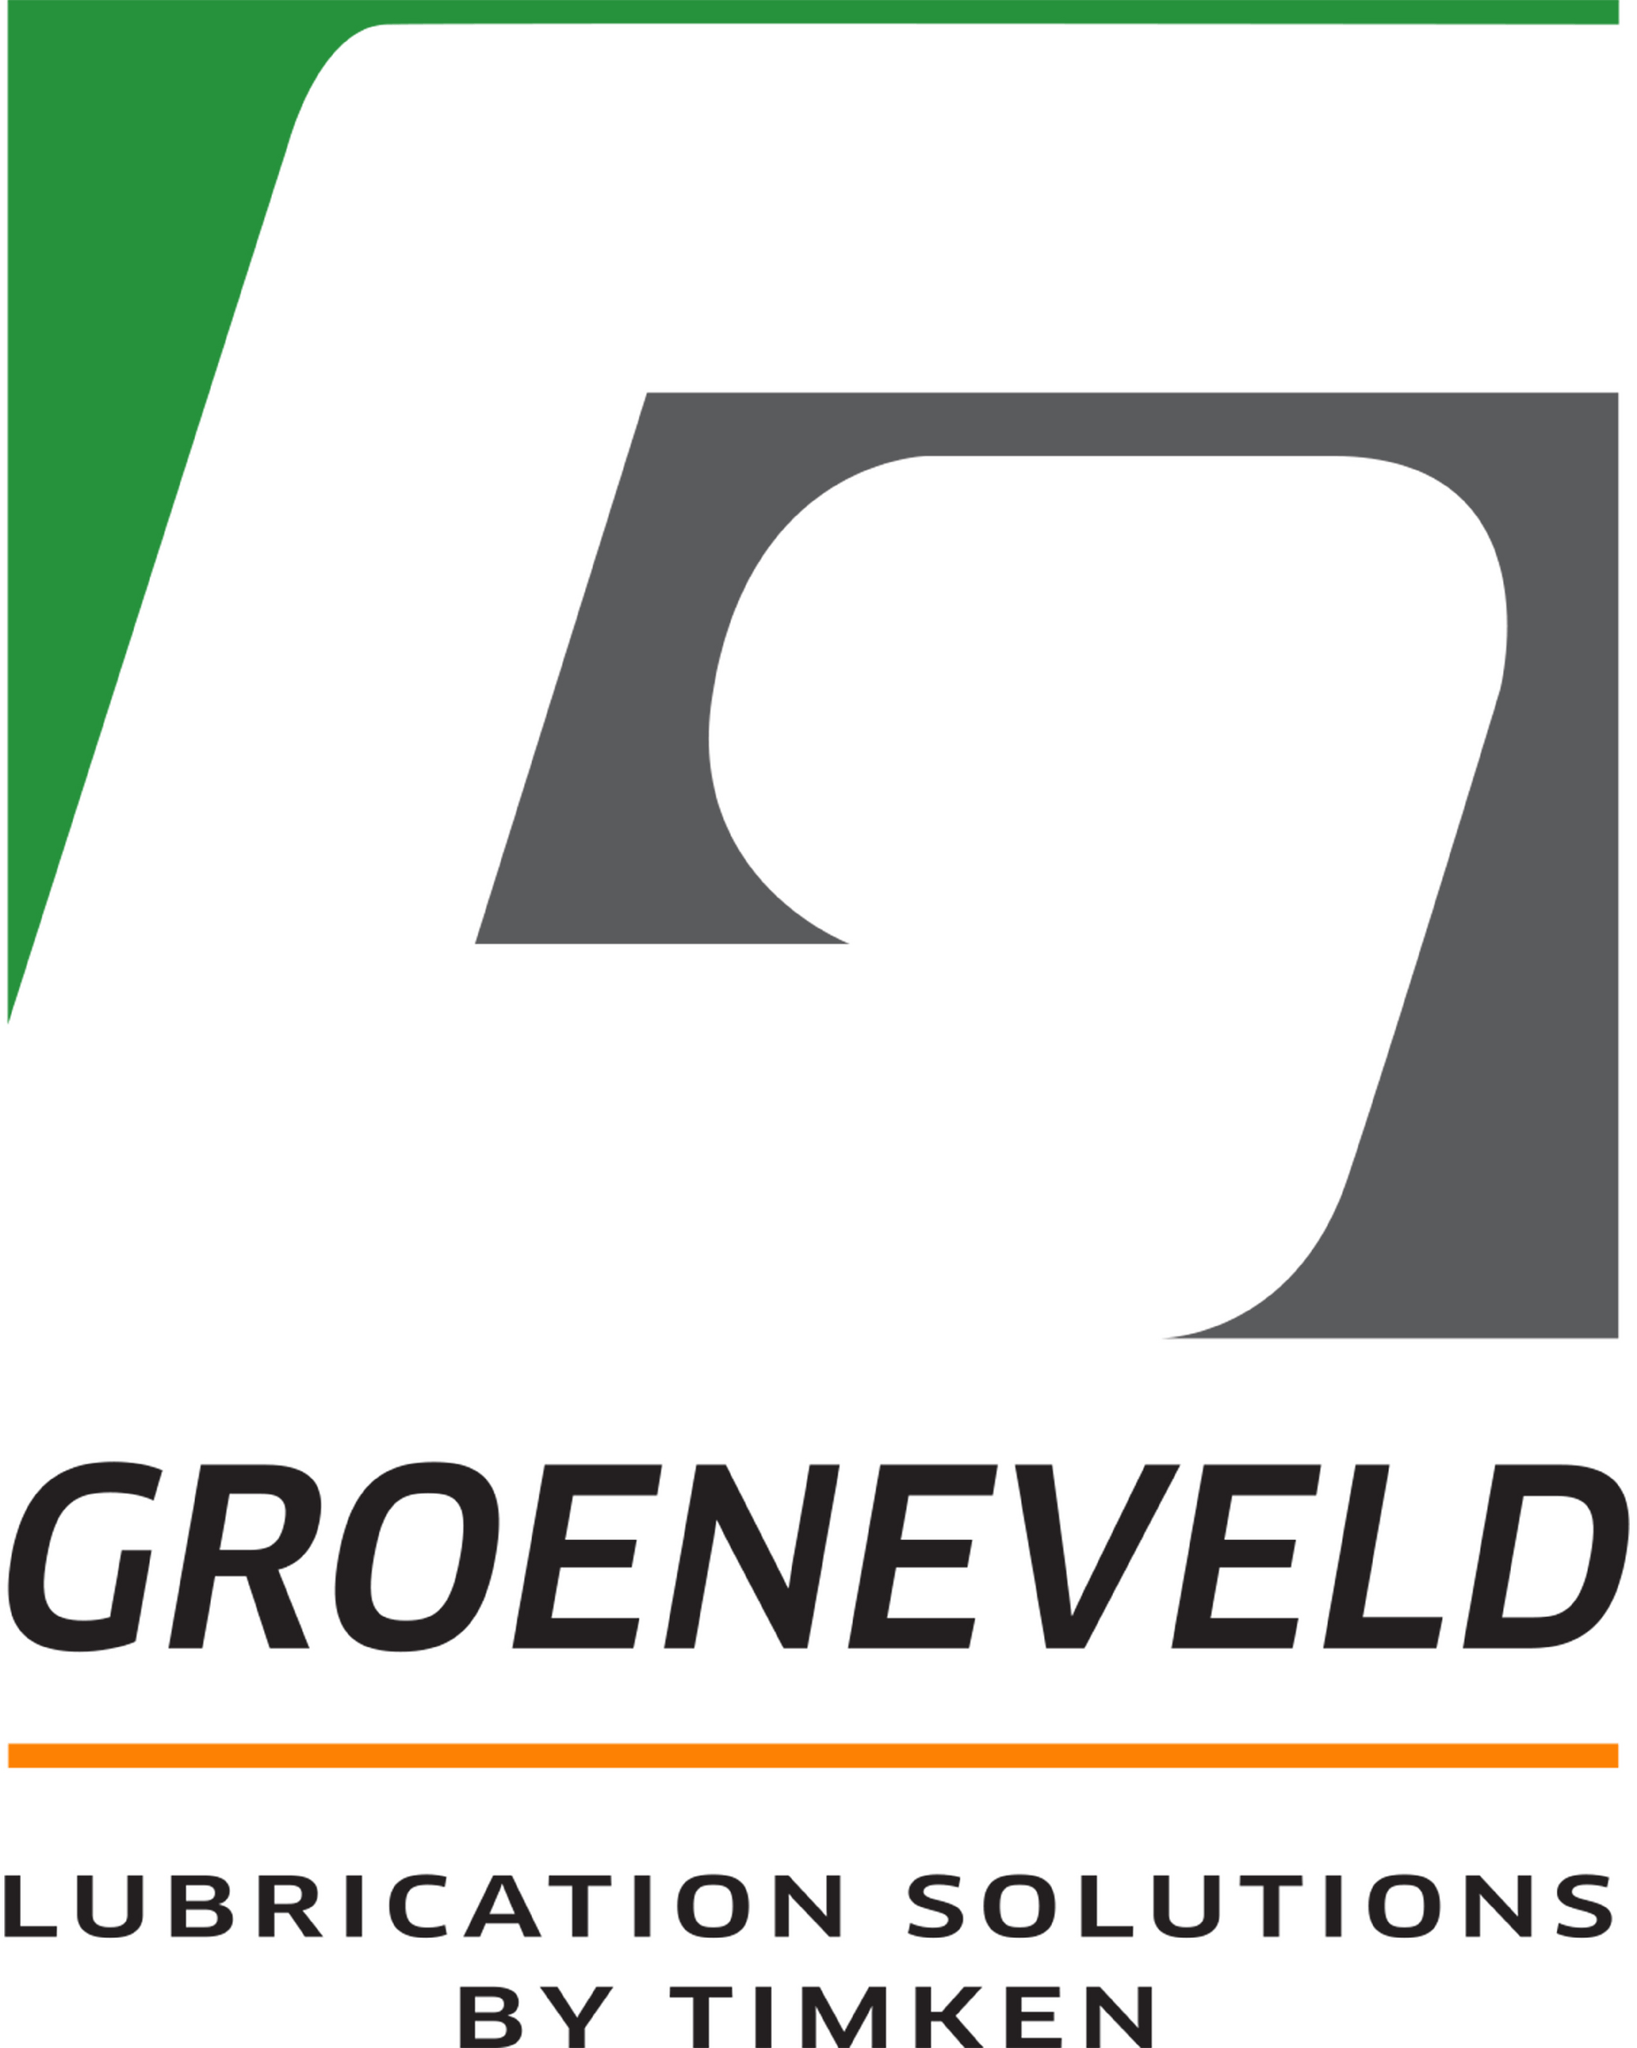 Groeneveld Lubrication Solutions by Timken